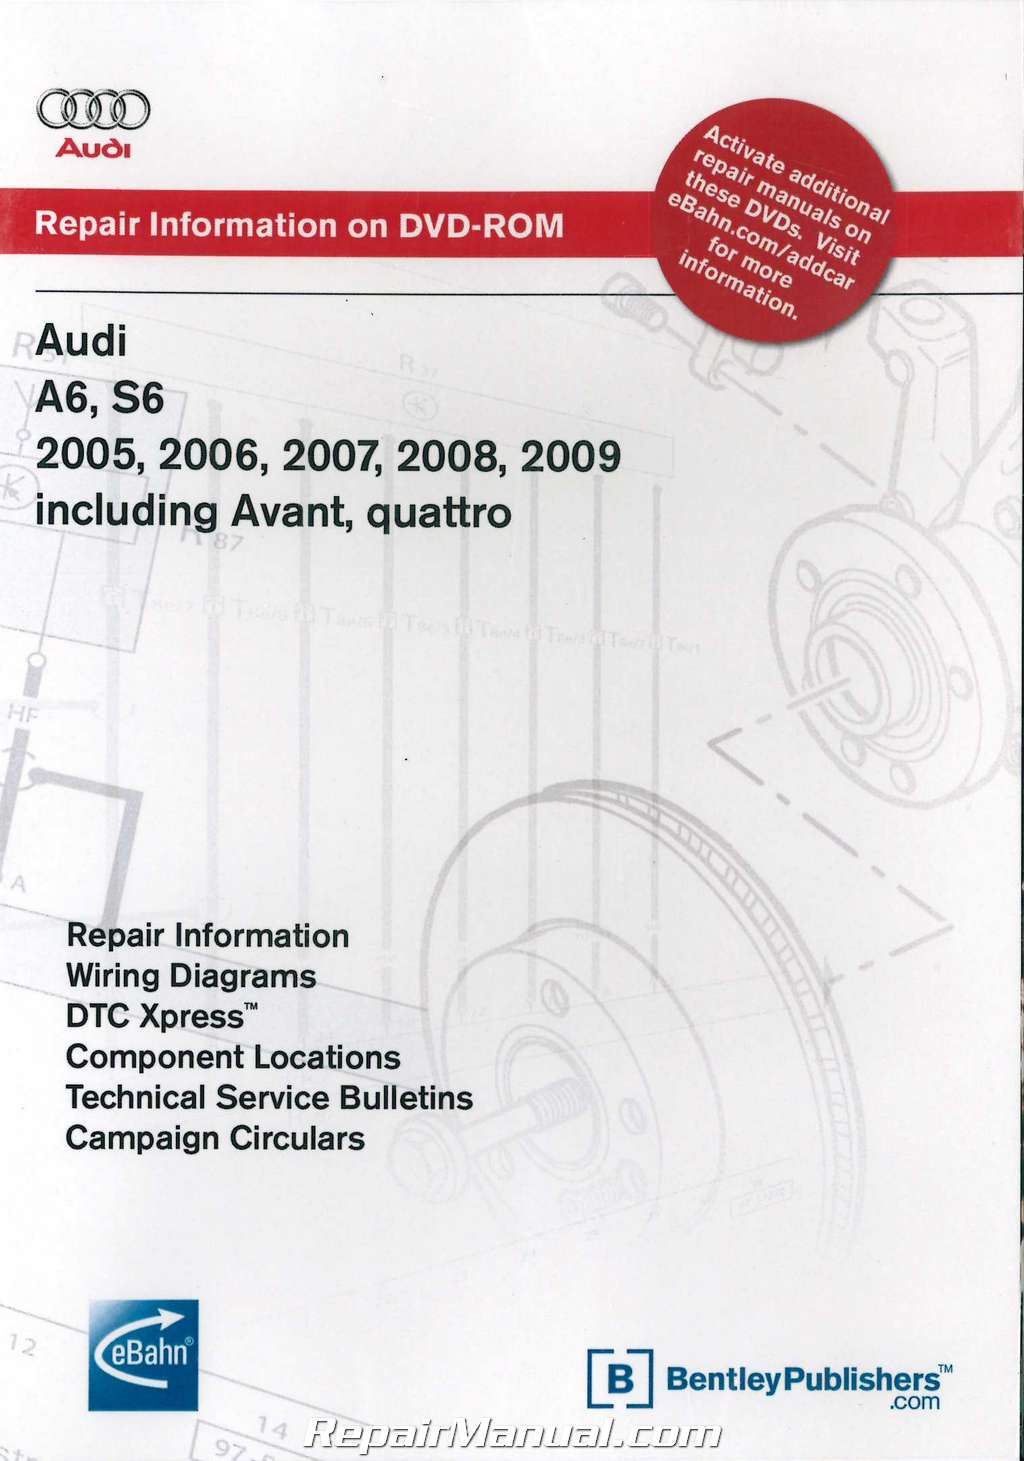 audi a6 s6 2005 2009 including 2005 2006 avant quattro repair manual rh  repairmanual com audi s6 owner's manual audi a6 service manual pdf